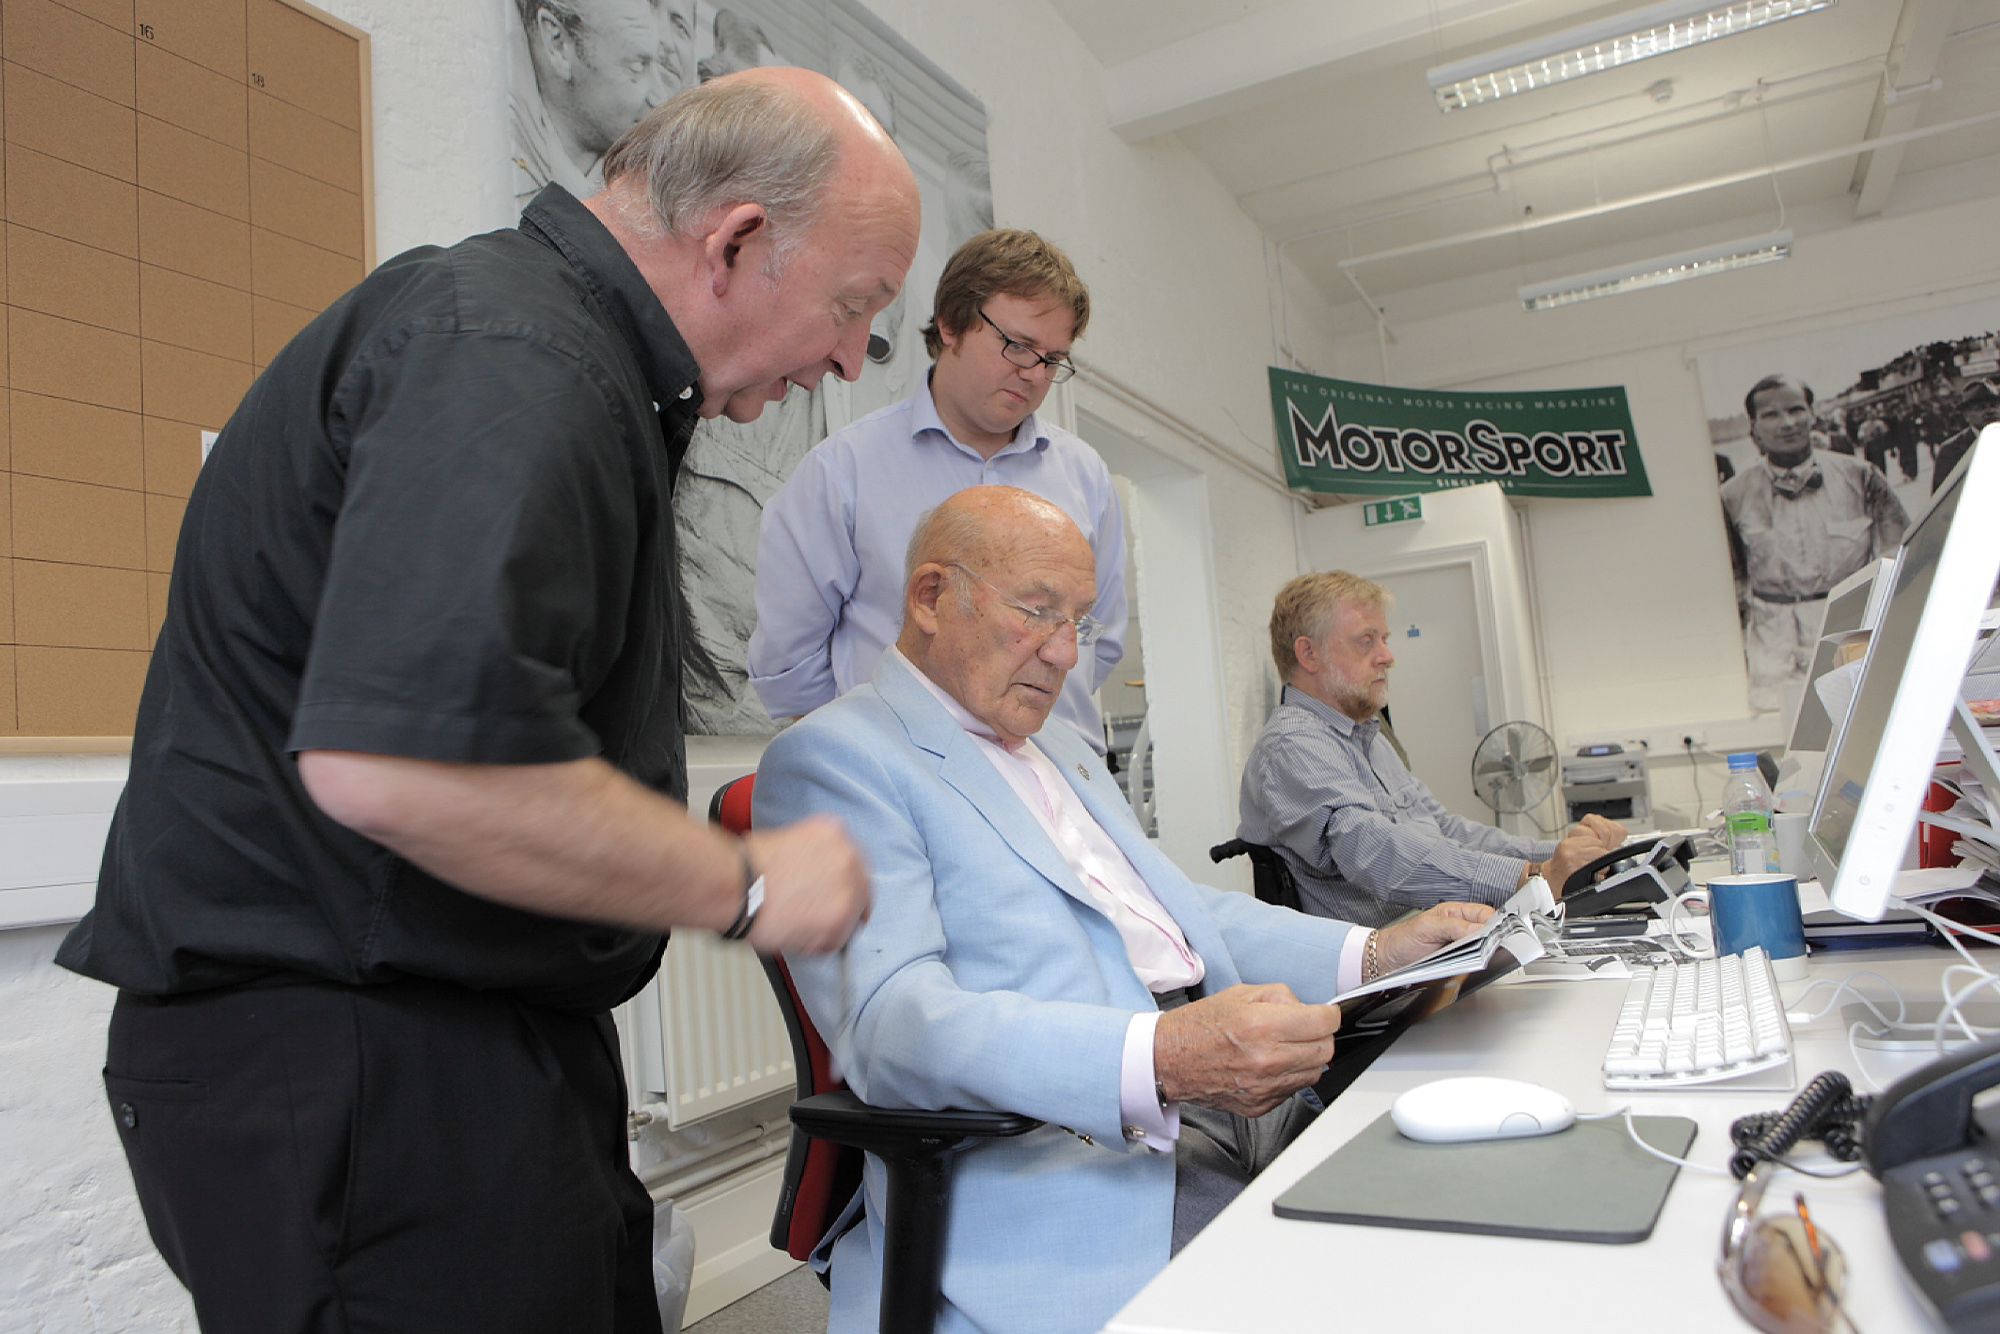 Stirling Moss in the Motor Sport editors chair